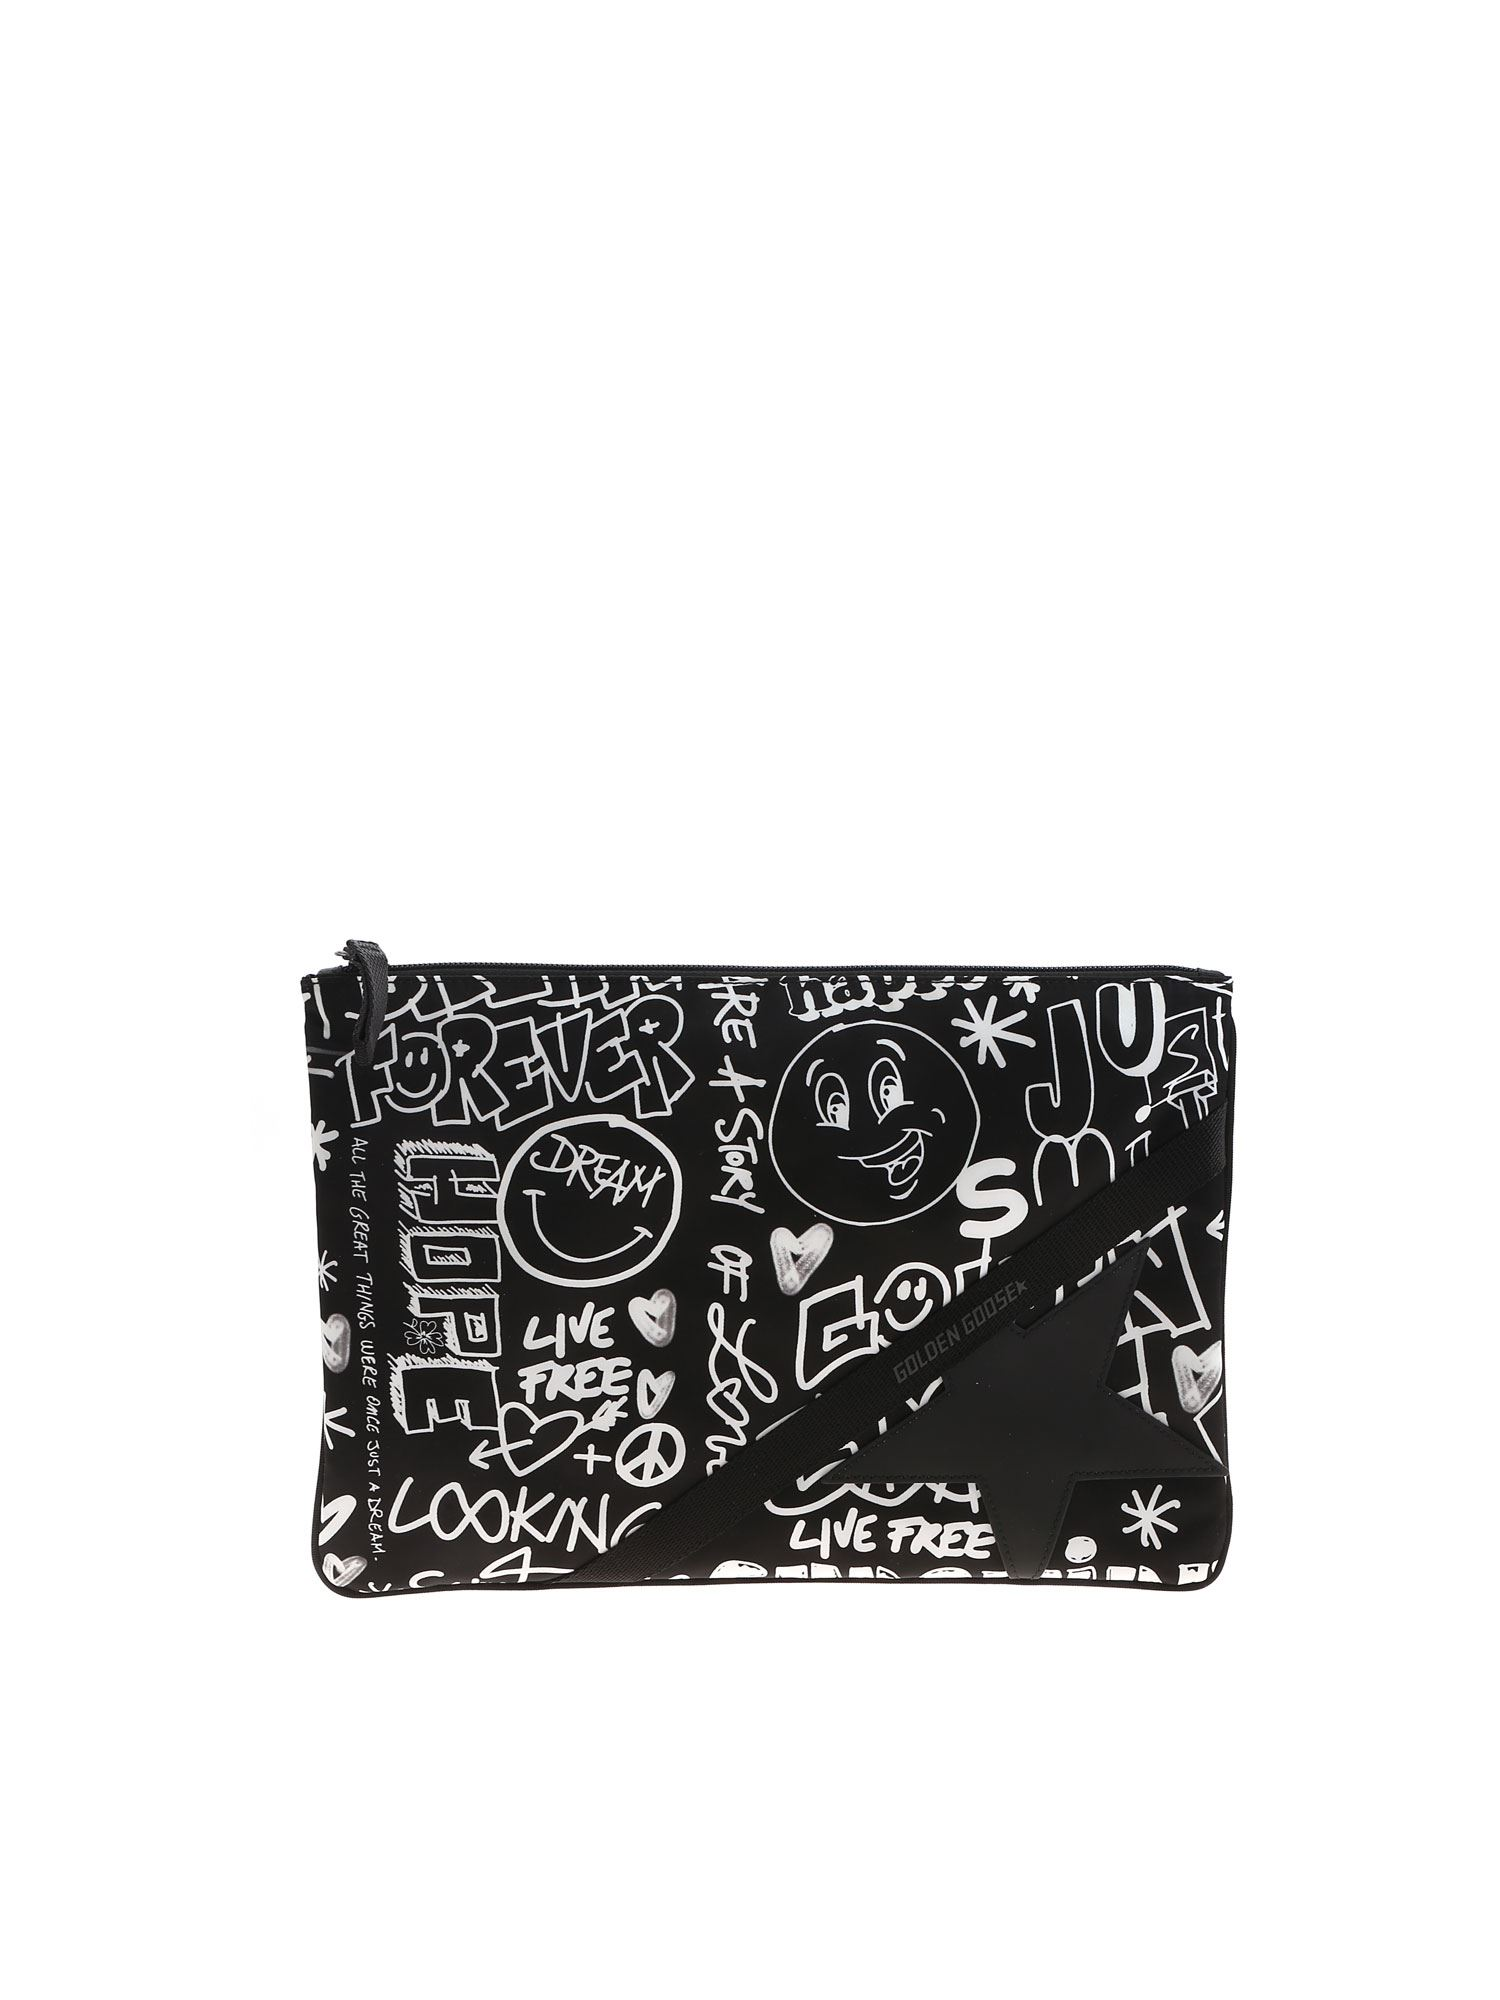 Golden Goose JOURNEY POUCH CLUTCH BAG IN BLACK